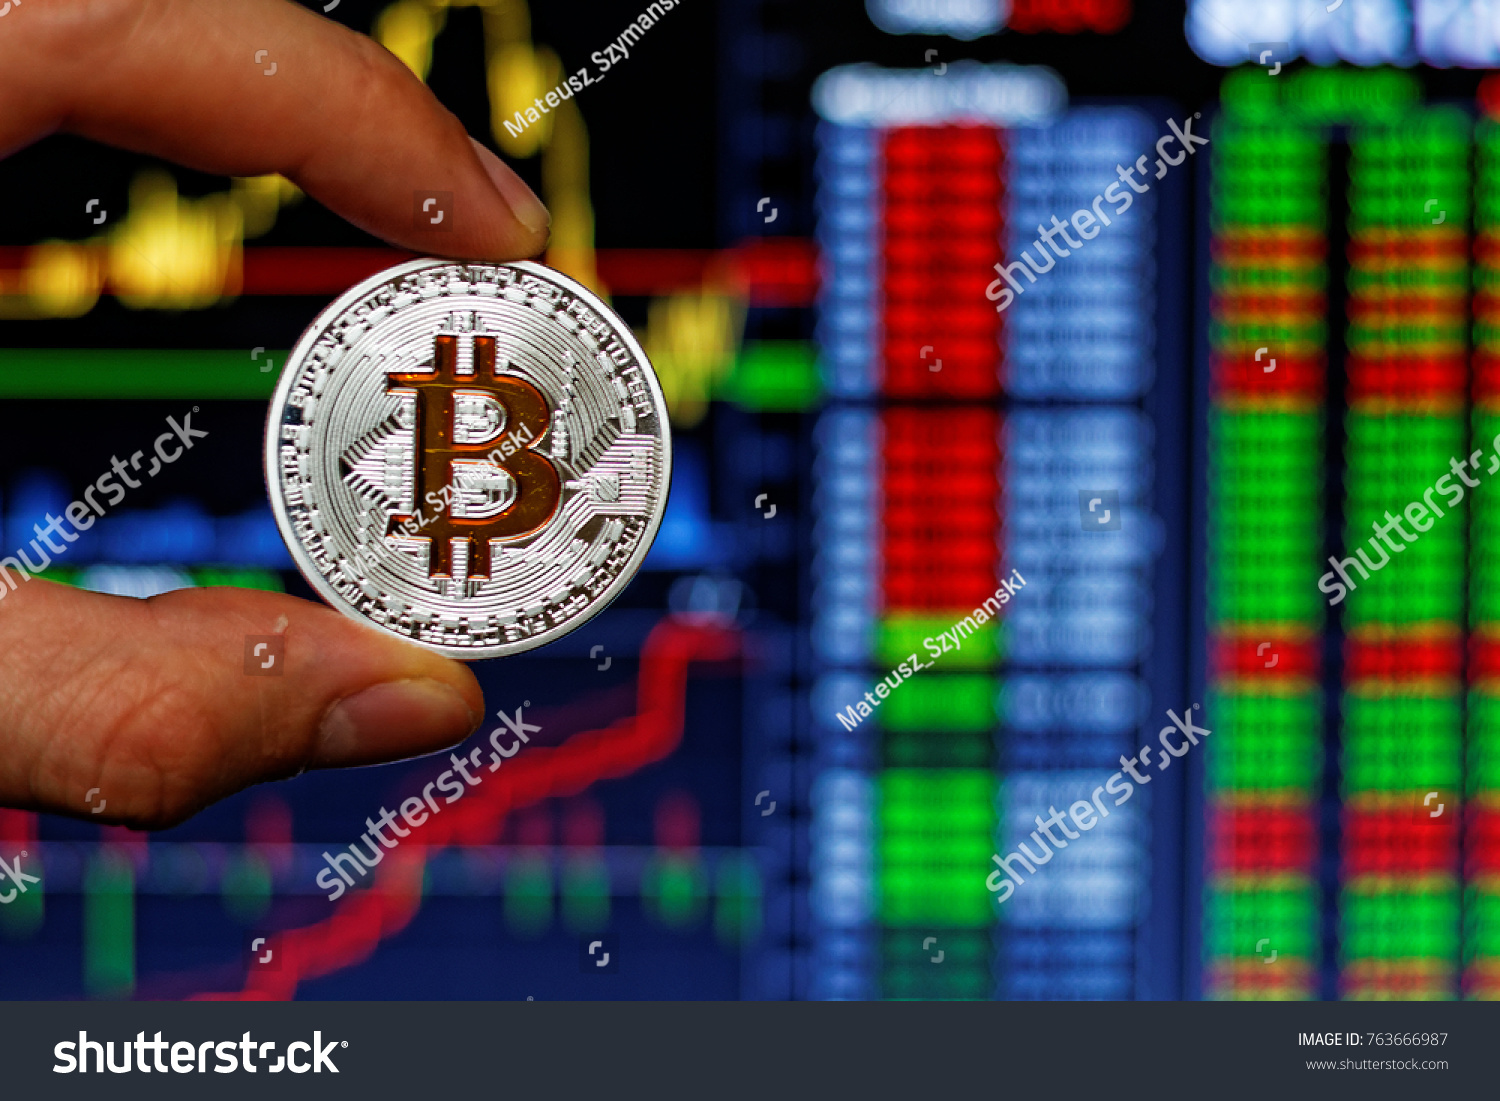 Silver bitcoin gold btc symbol holding stock photo 763666987 silver bitcoin with gold btc symbol holding by mans hand stock market chart background biocorpaavc Images